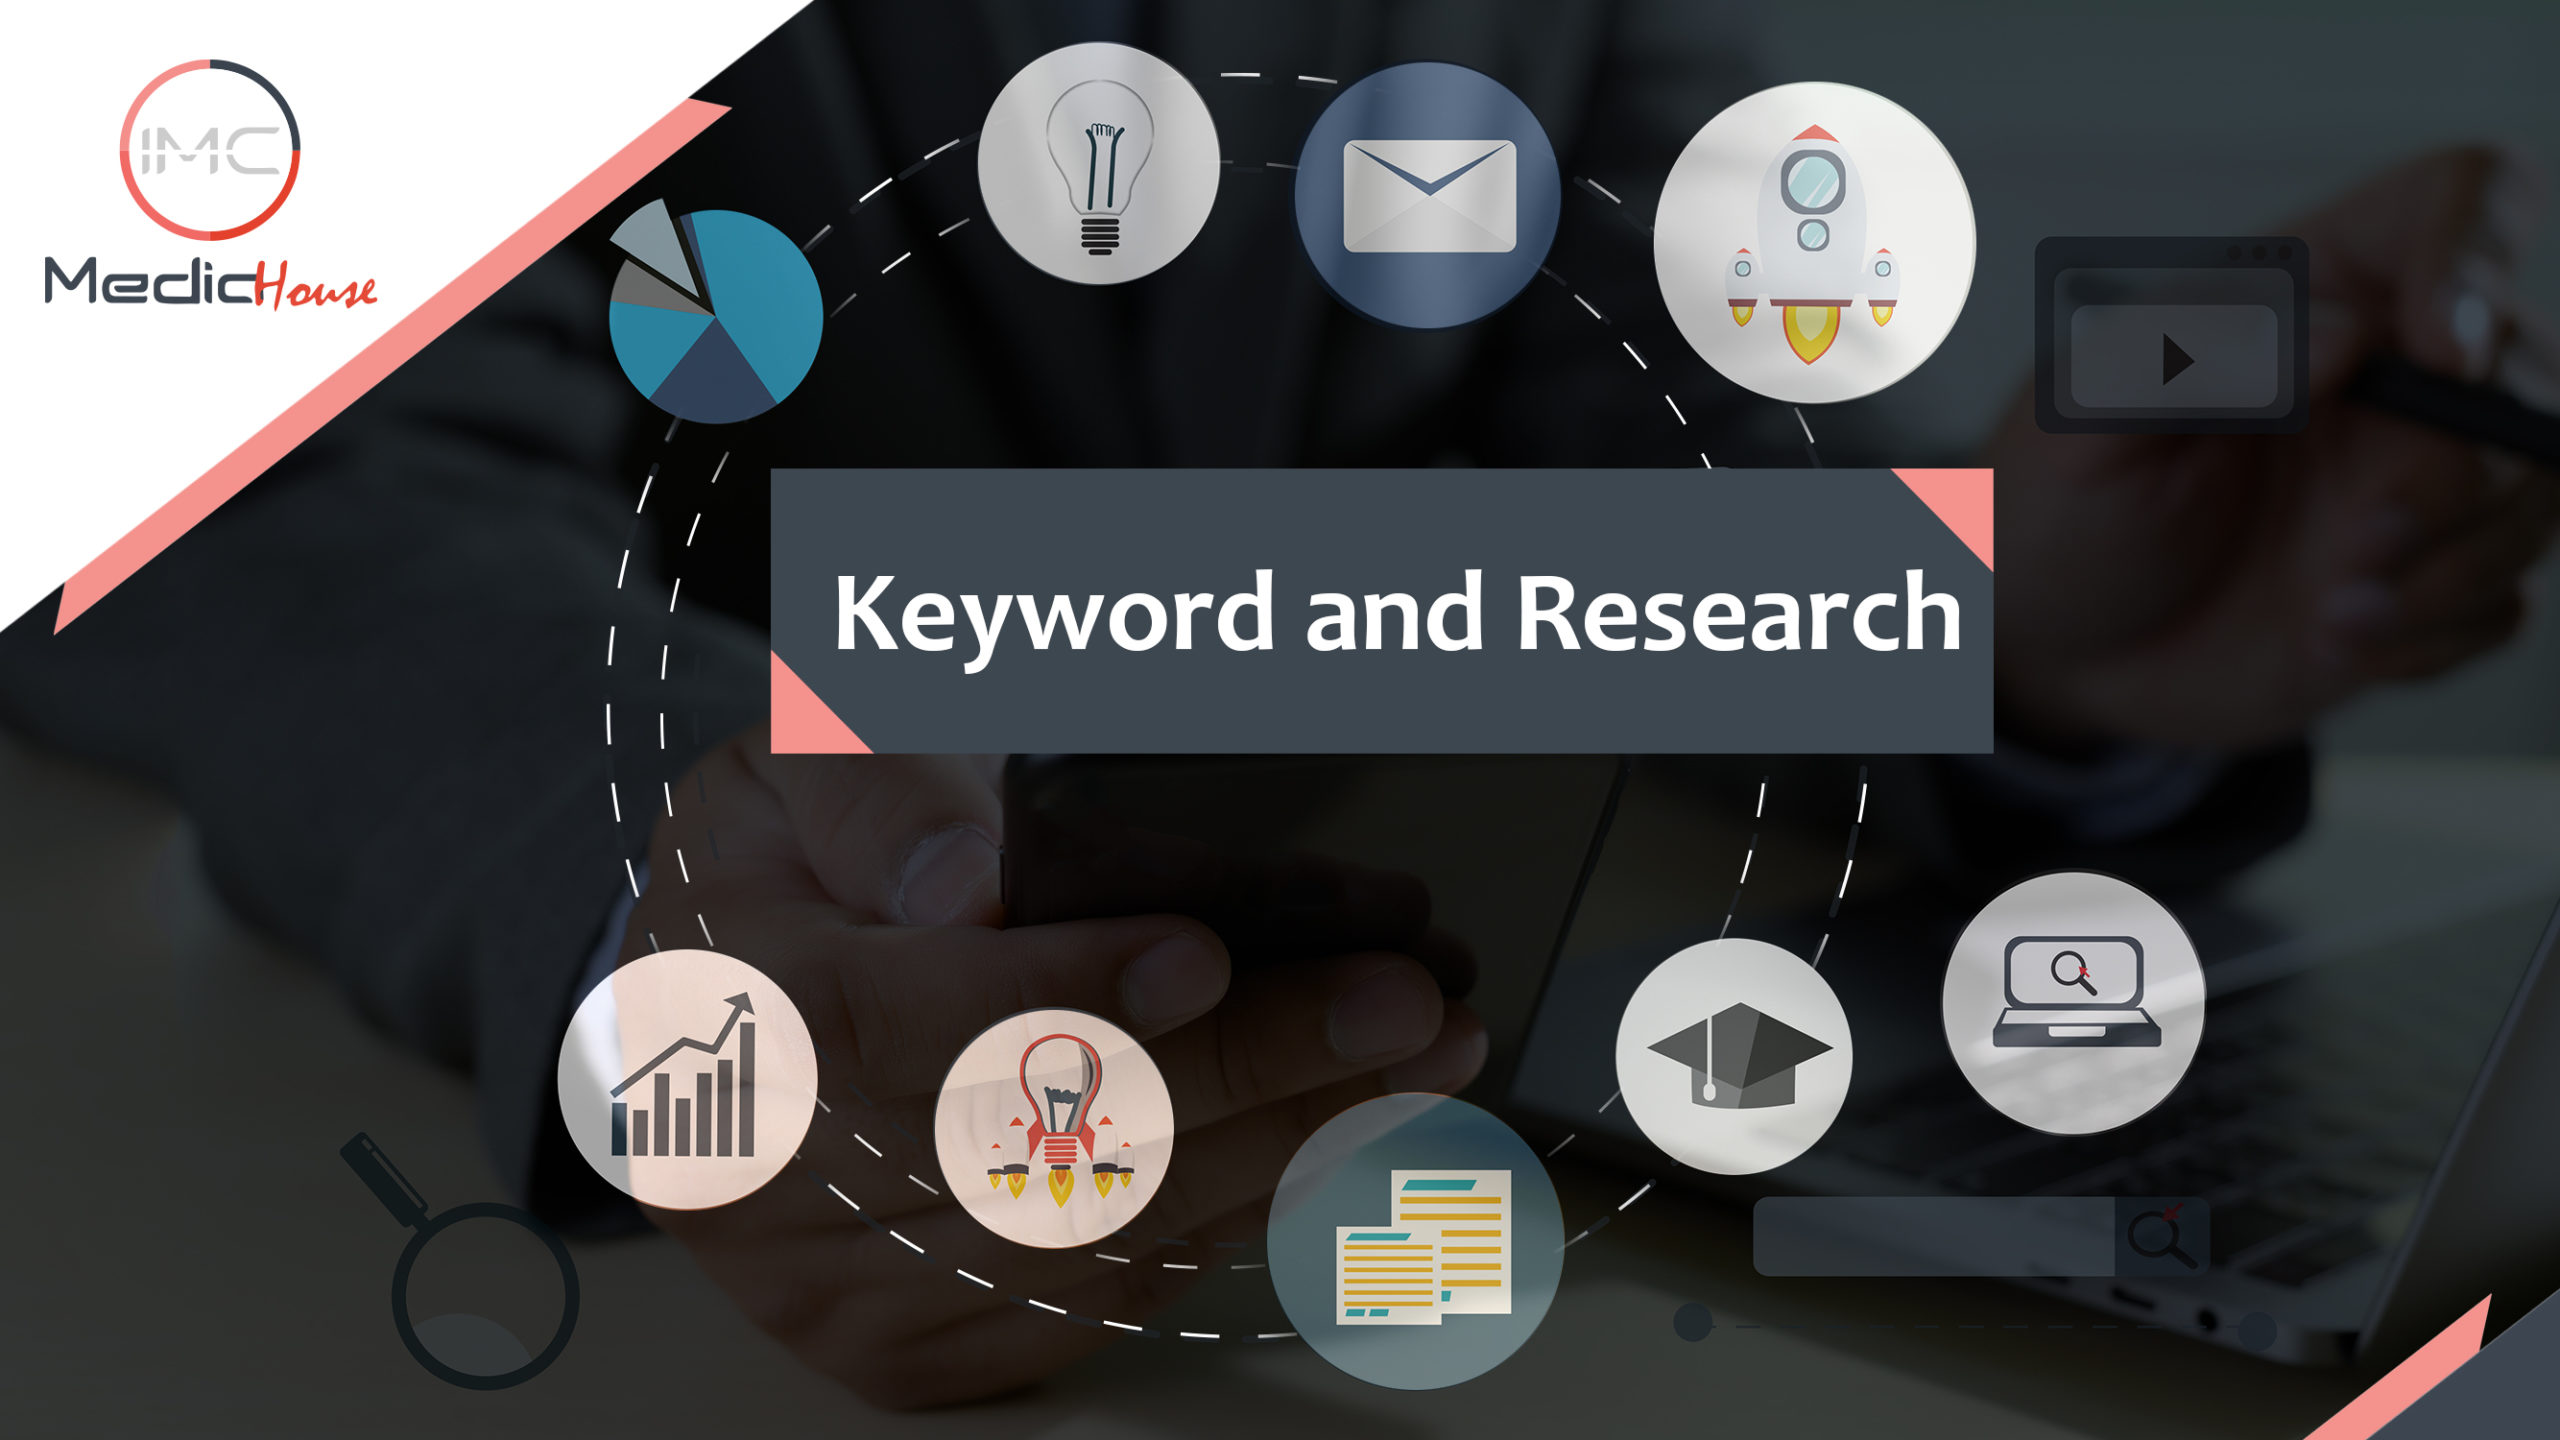 Keyword and Research